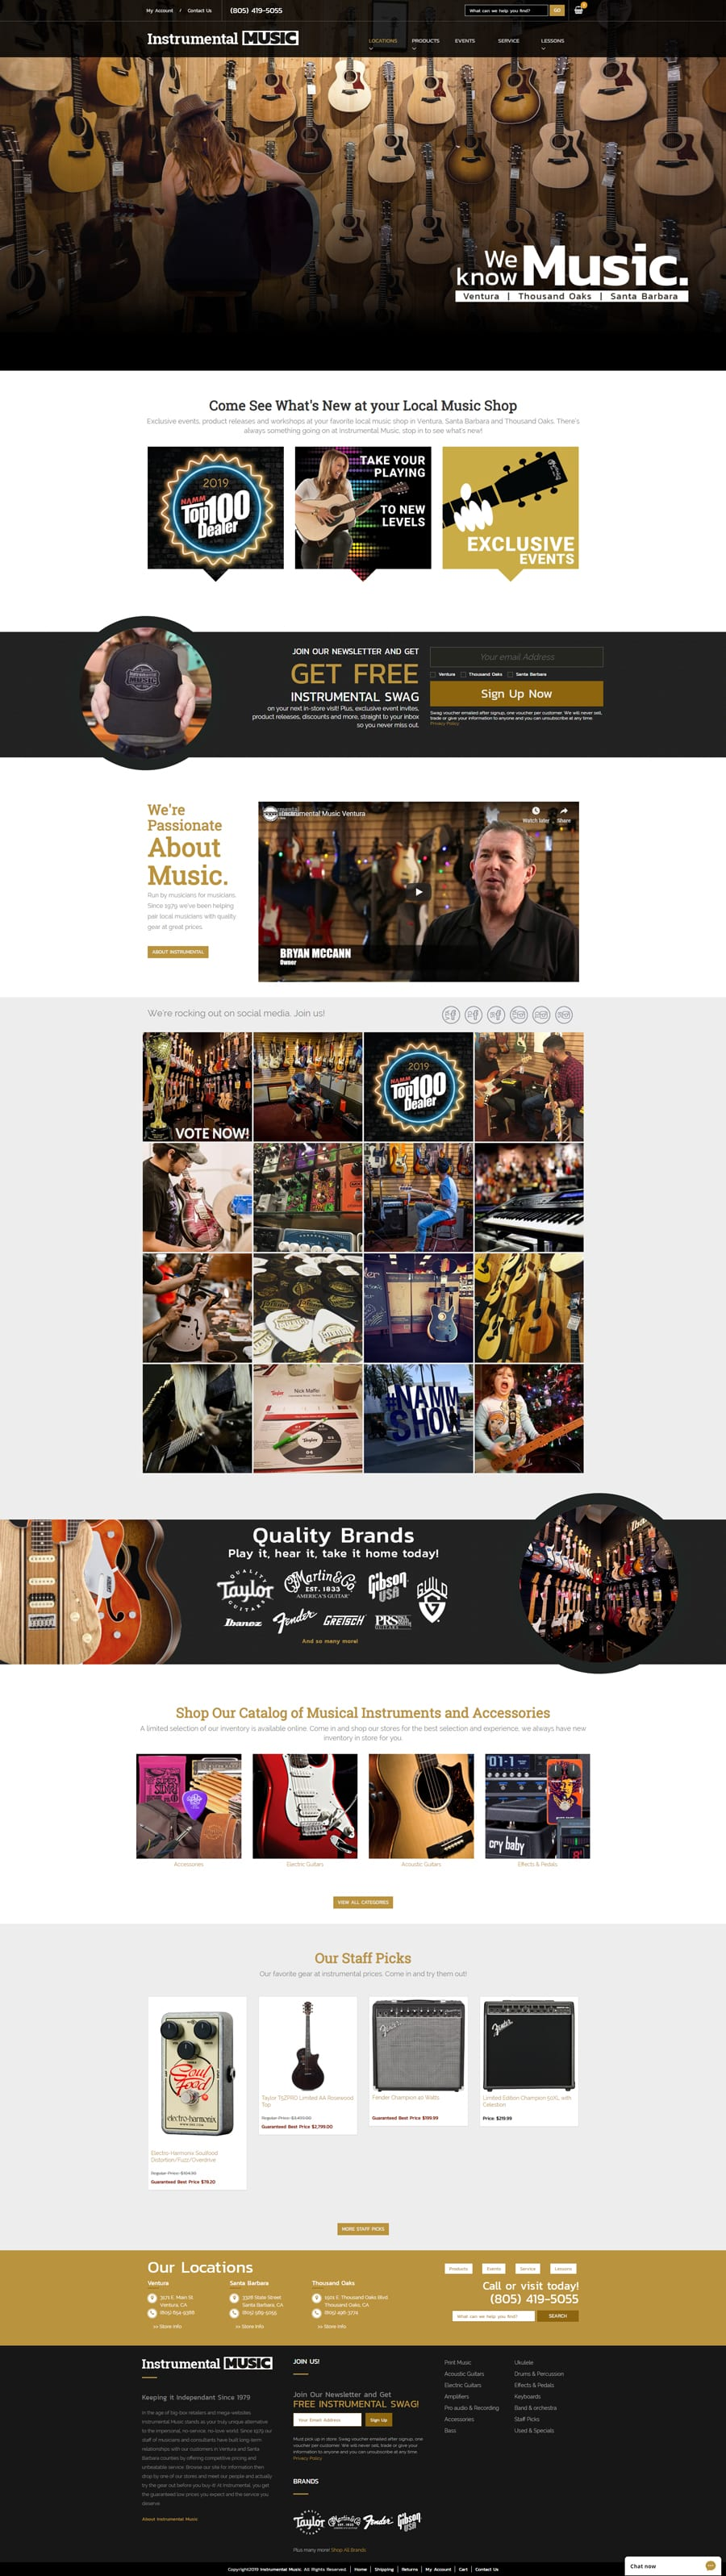 'Instrumental Music' Website Home Page